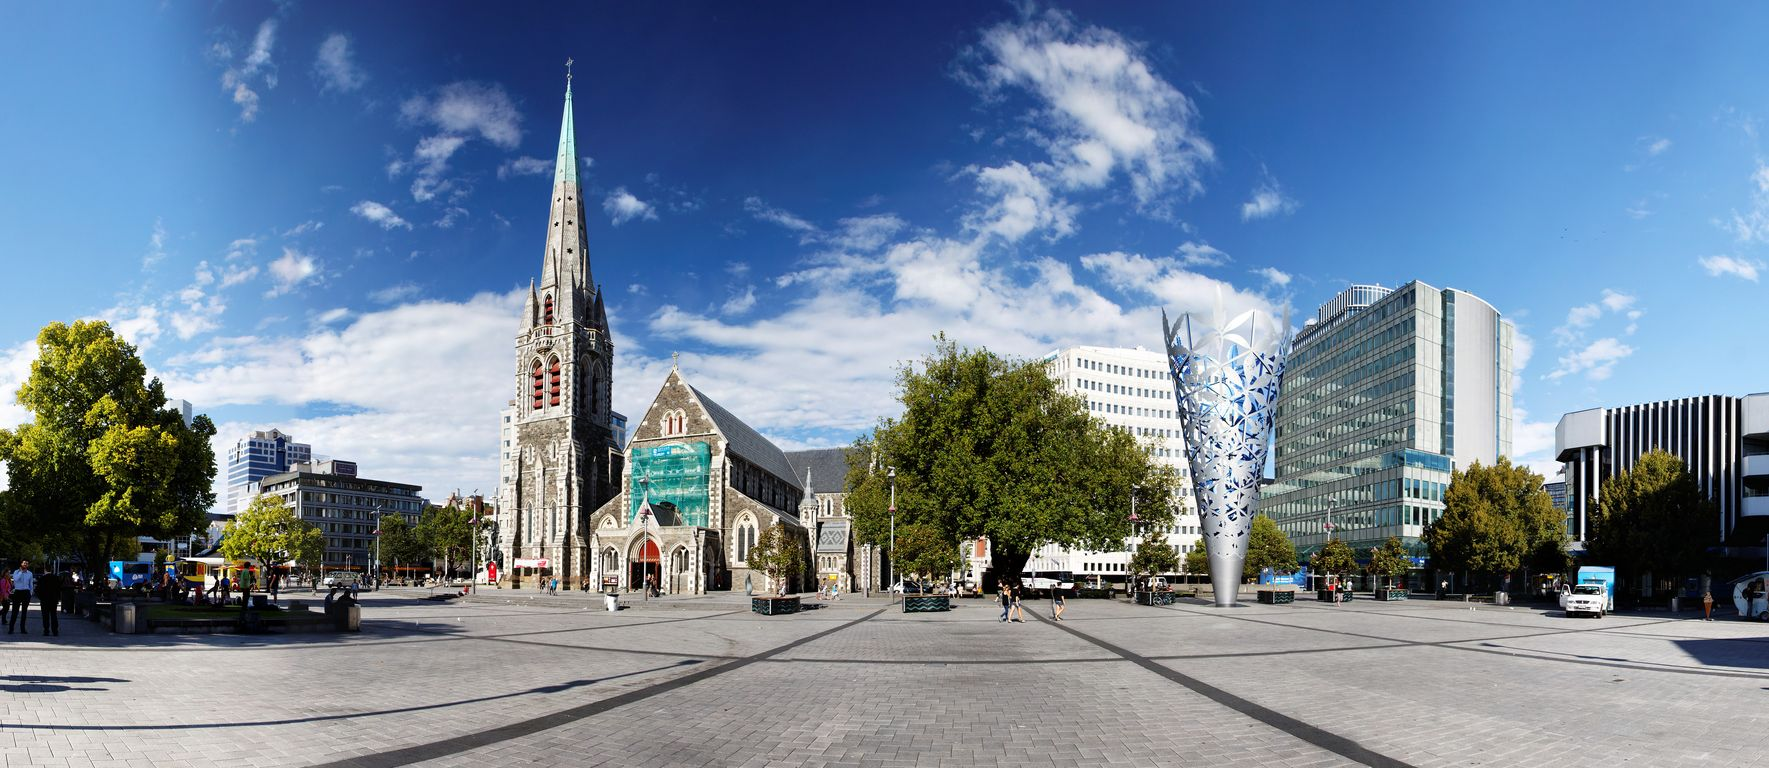 christchurch - photo #10